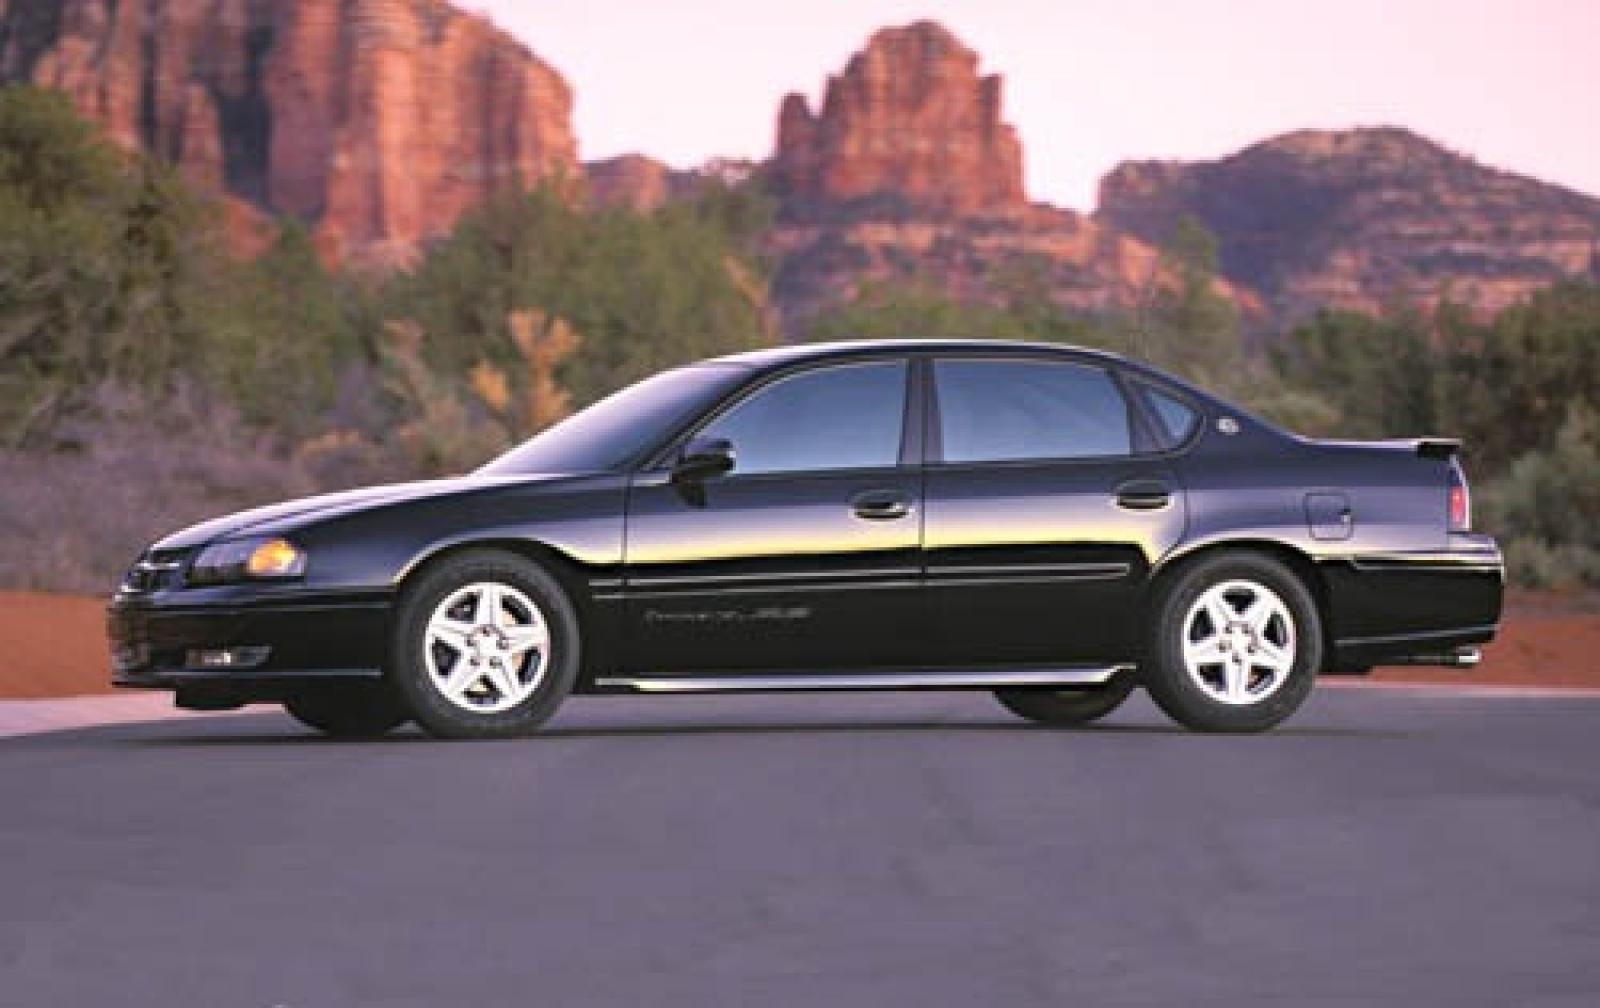 2005 chevrolet impala information and photos zombiedrive rh zombdrive com 2004 chevy impala manual download 2005 chevy impala manual pdf